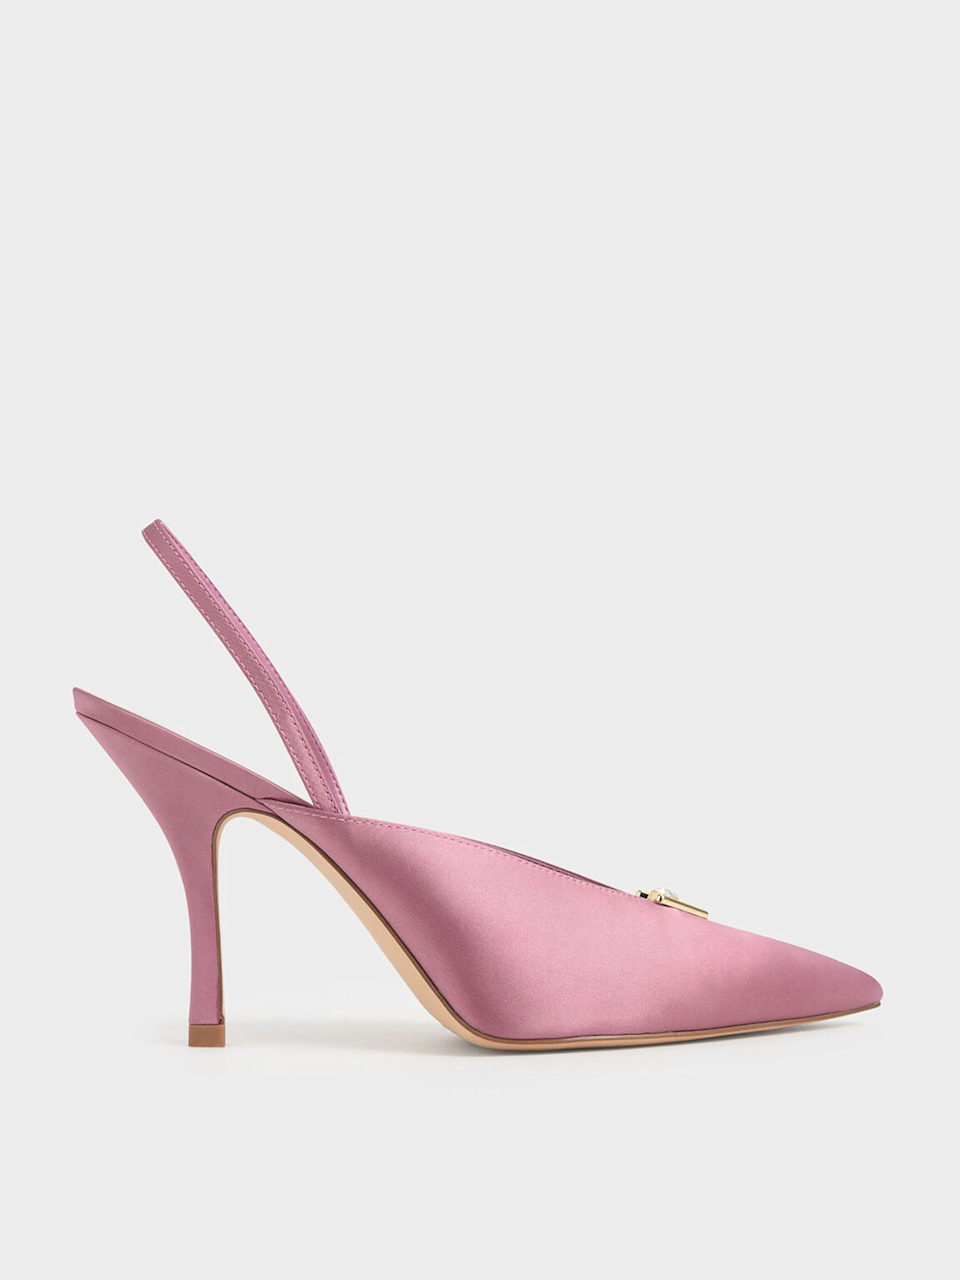 "<br><br><strong>Charles & Keith</strong> Satin Embellished Slingback Heels, $, available at <a href=""https://go.skimresources.com/?id=30283X879131&url=https%3A%2F%2Fwww.charleskeith.com%2Fus%2Fsale%2FCK1-60280223_PINK.html"" rel=""nofollow noopener"" target=""_blank"" data-ylk=""slk:Charles & Keith"" class=""link rapid-noclick-resp"">Charles & Keith</a>"